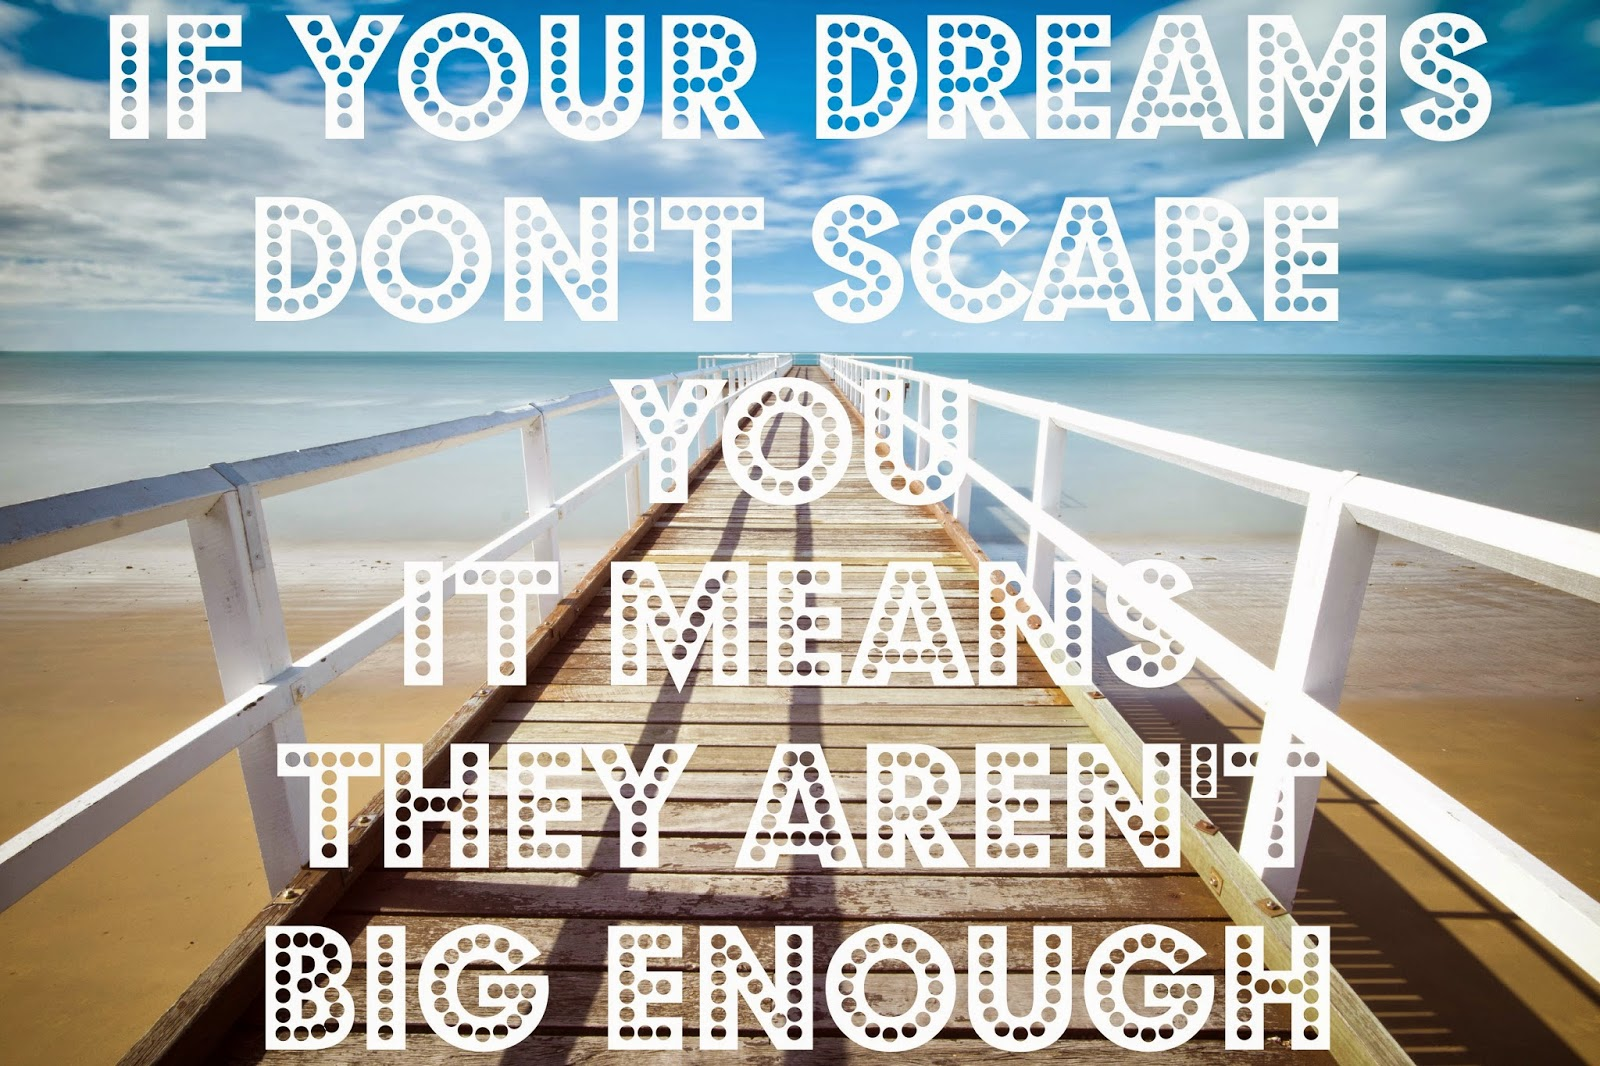 If your dreams don't scare you it means they aren't big enough